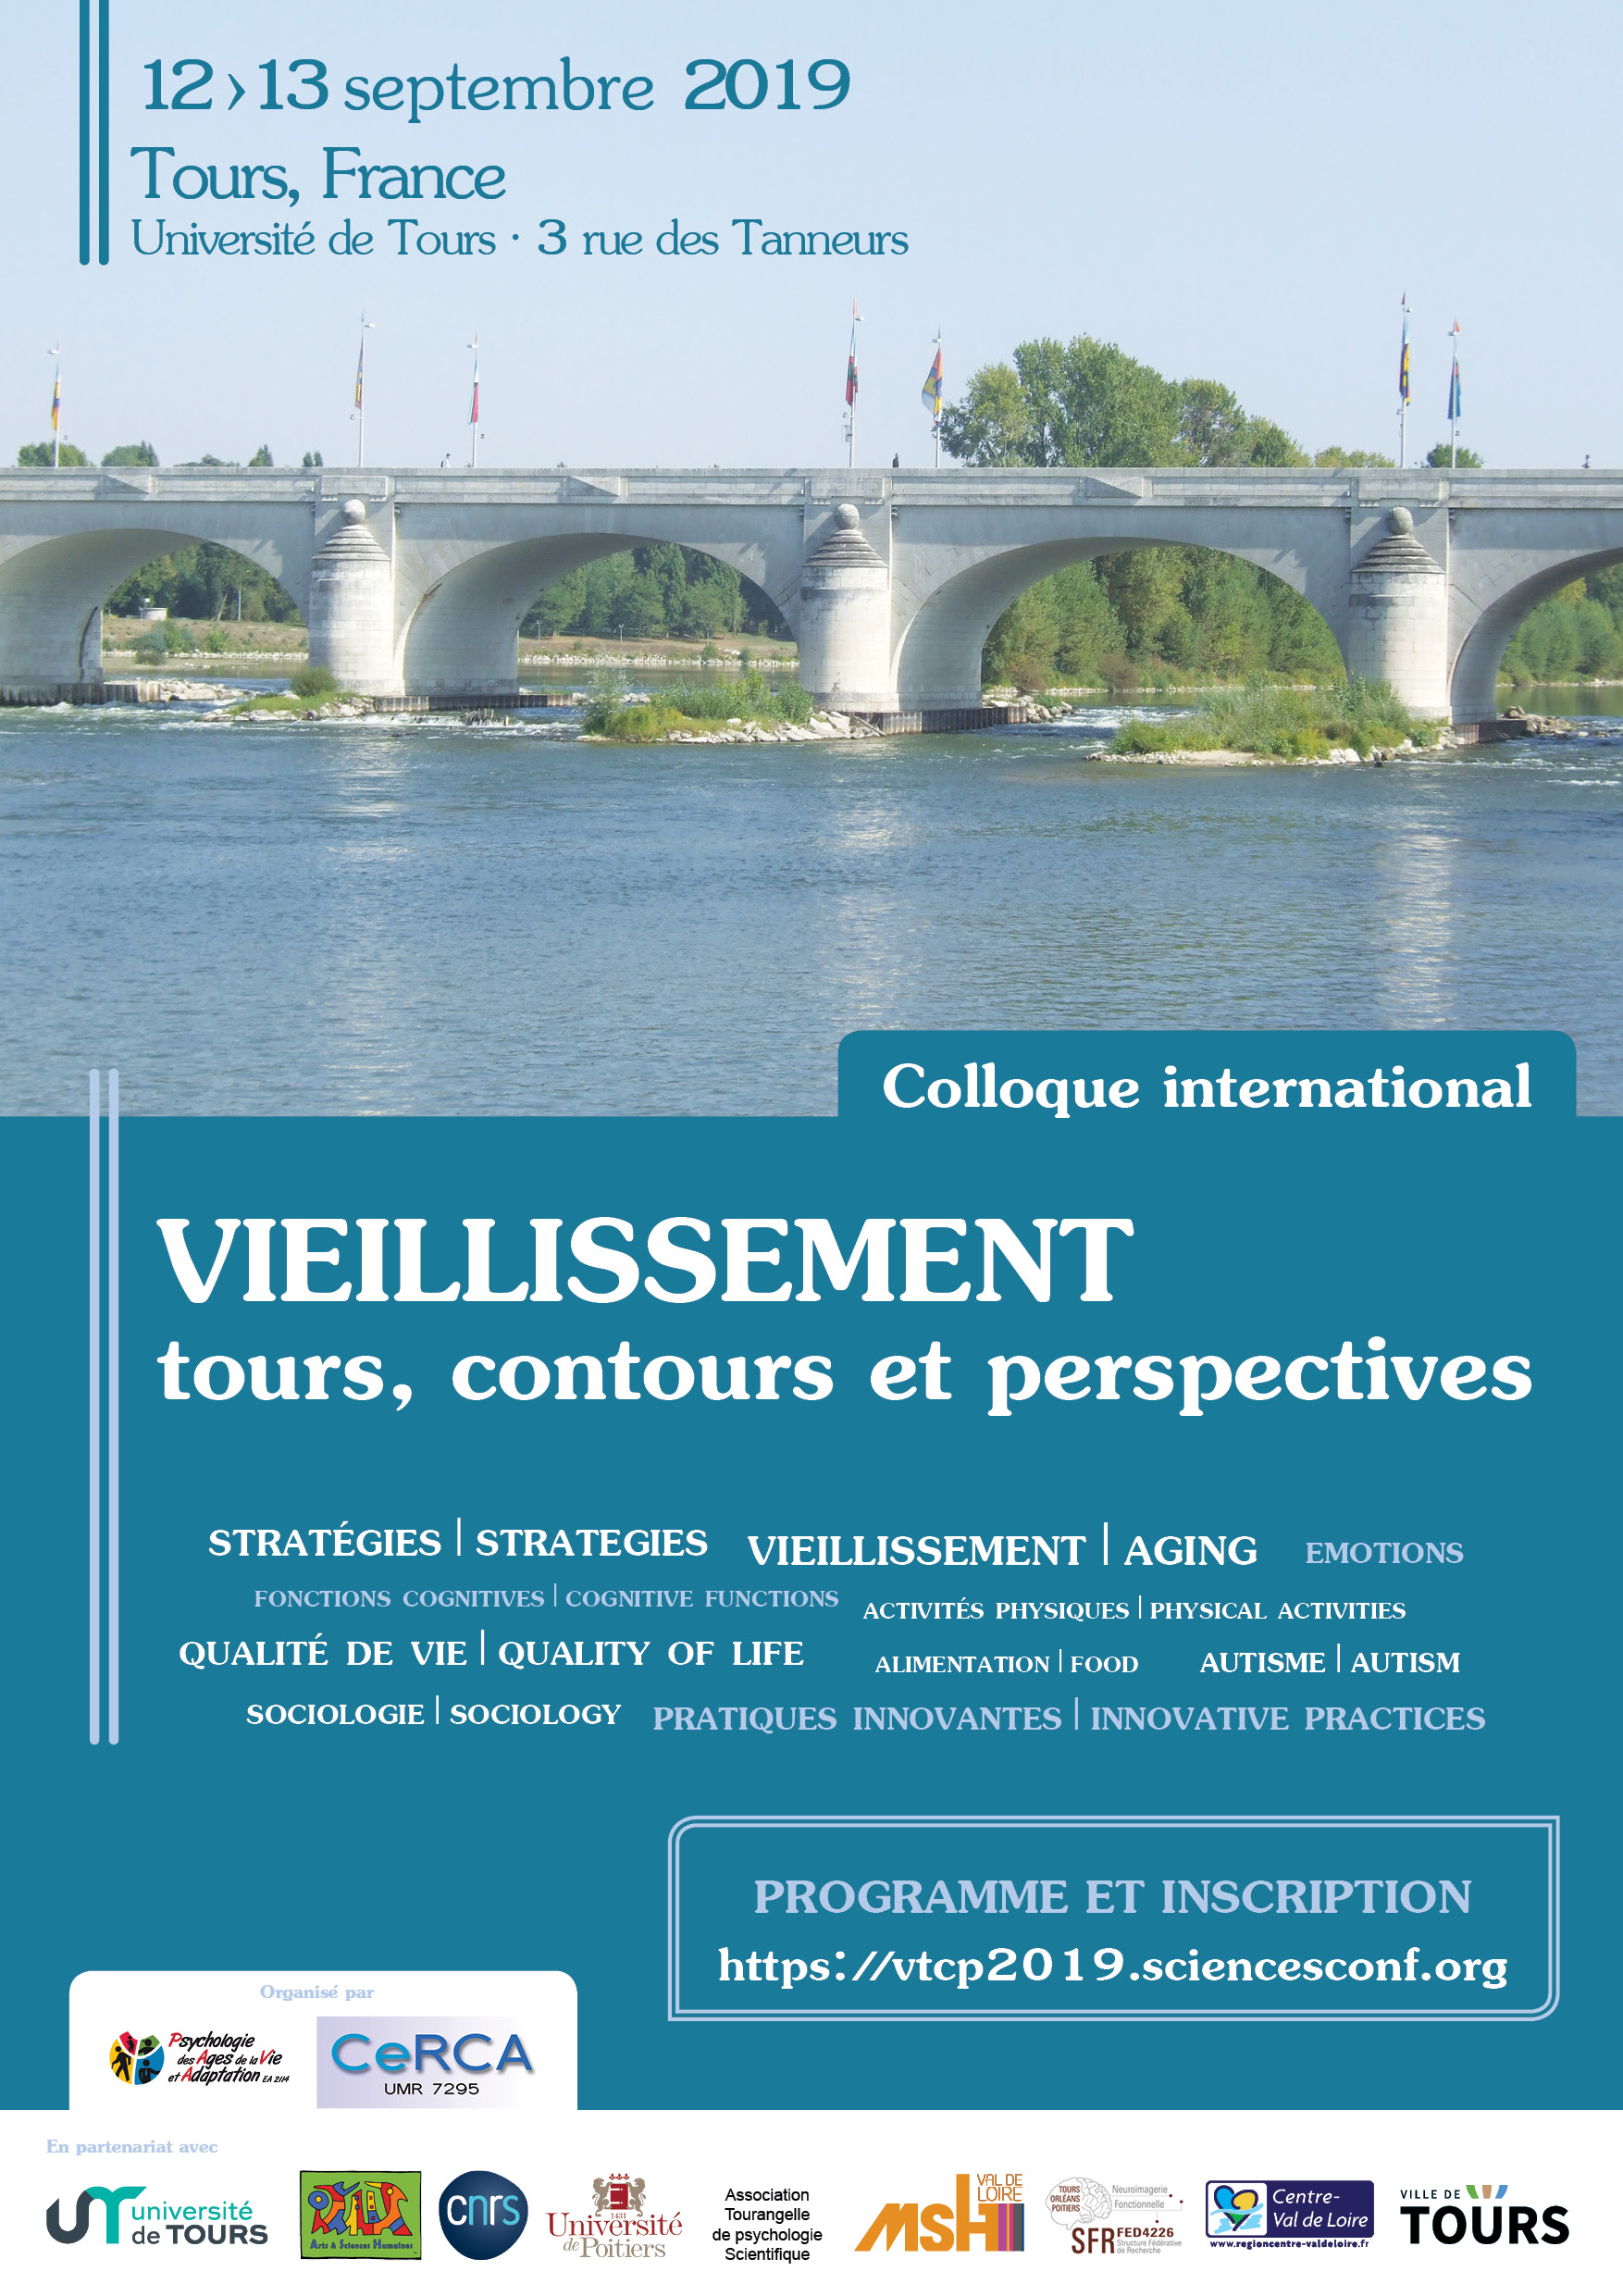 Colloque international « Vieillissement : tours, contours et perspectives »